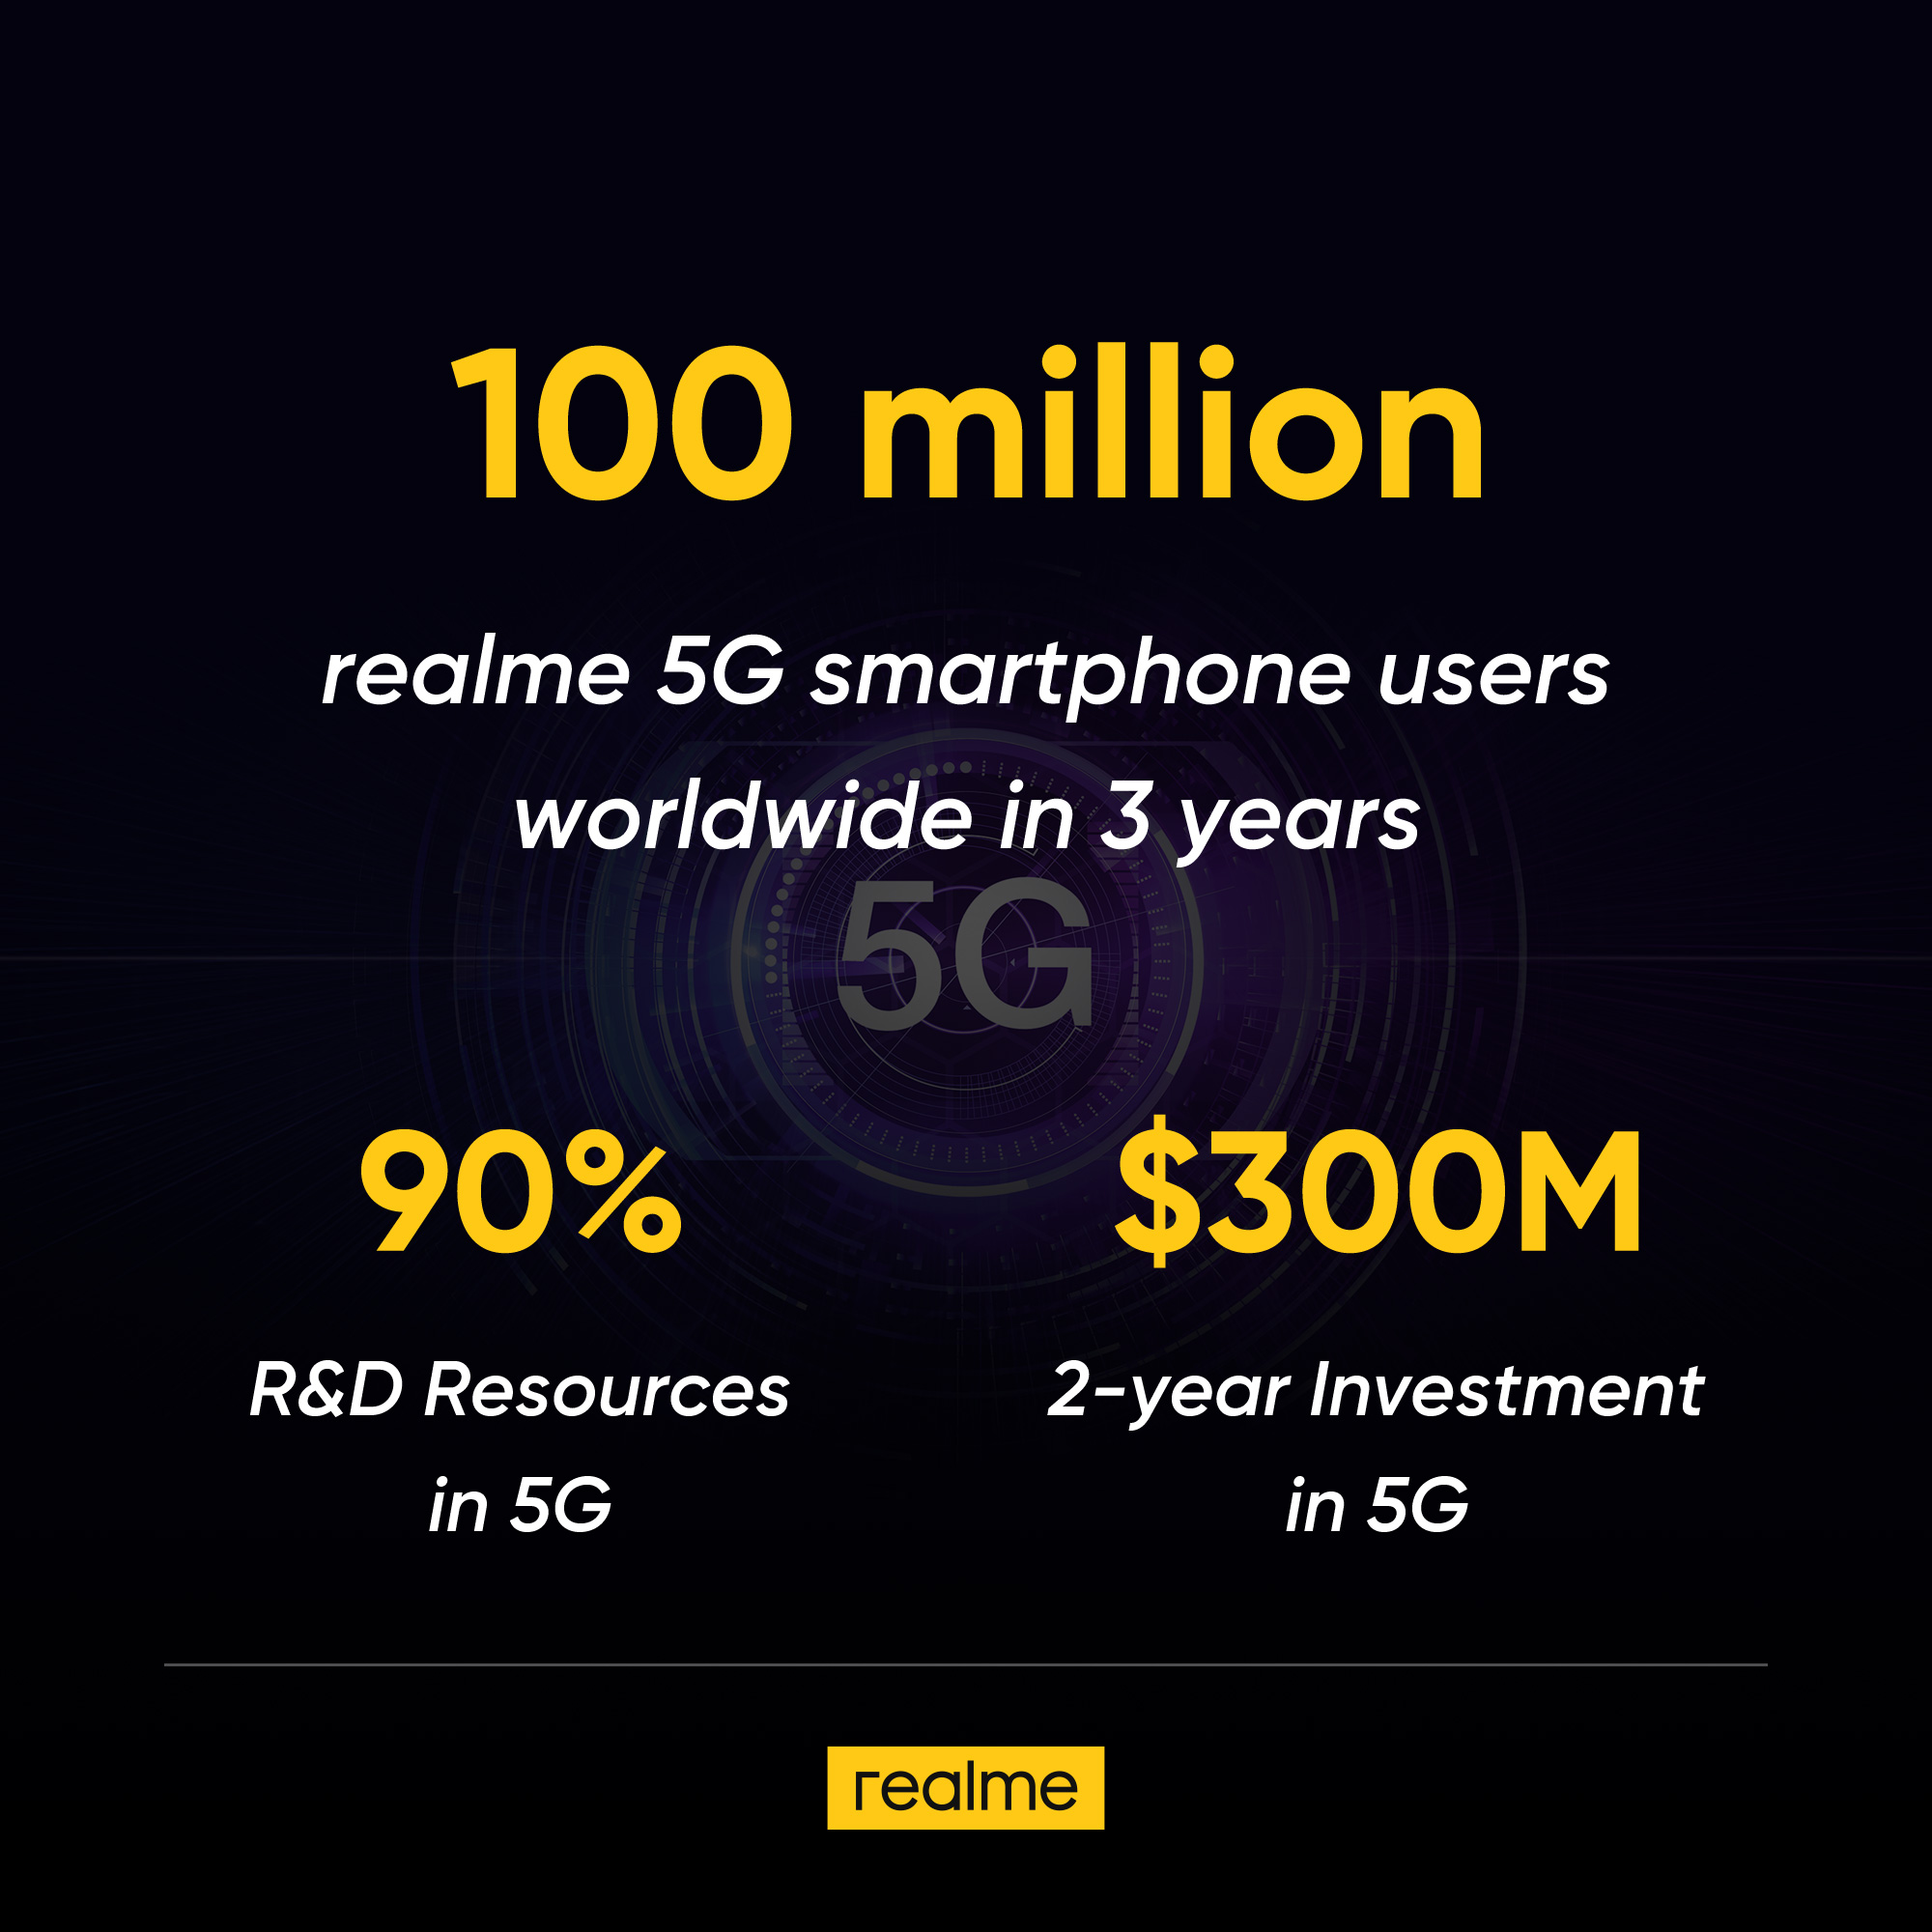 One Out of Every Two Smartphones Will Support 5G by End of 2022, According to The Whitepaper Jointly Released by realme and Counterpoint